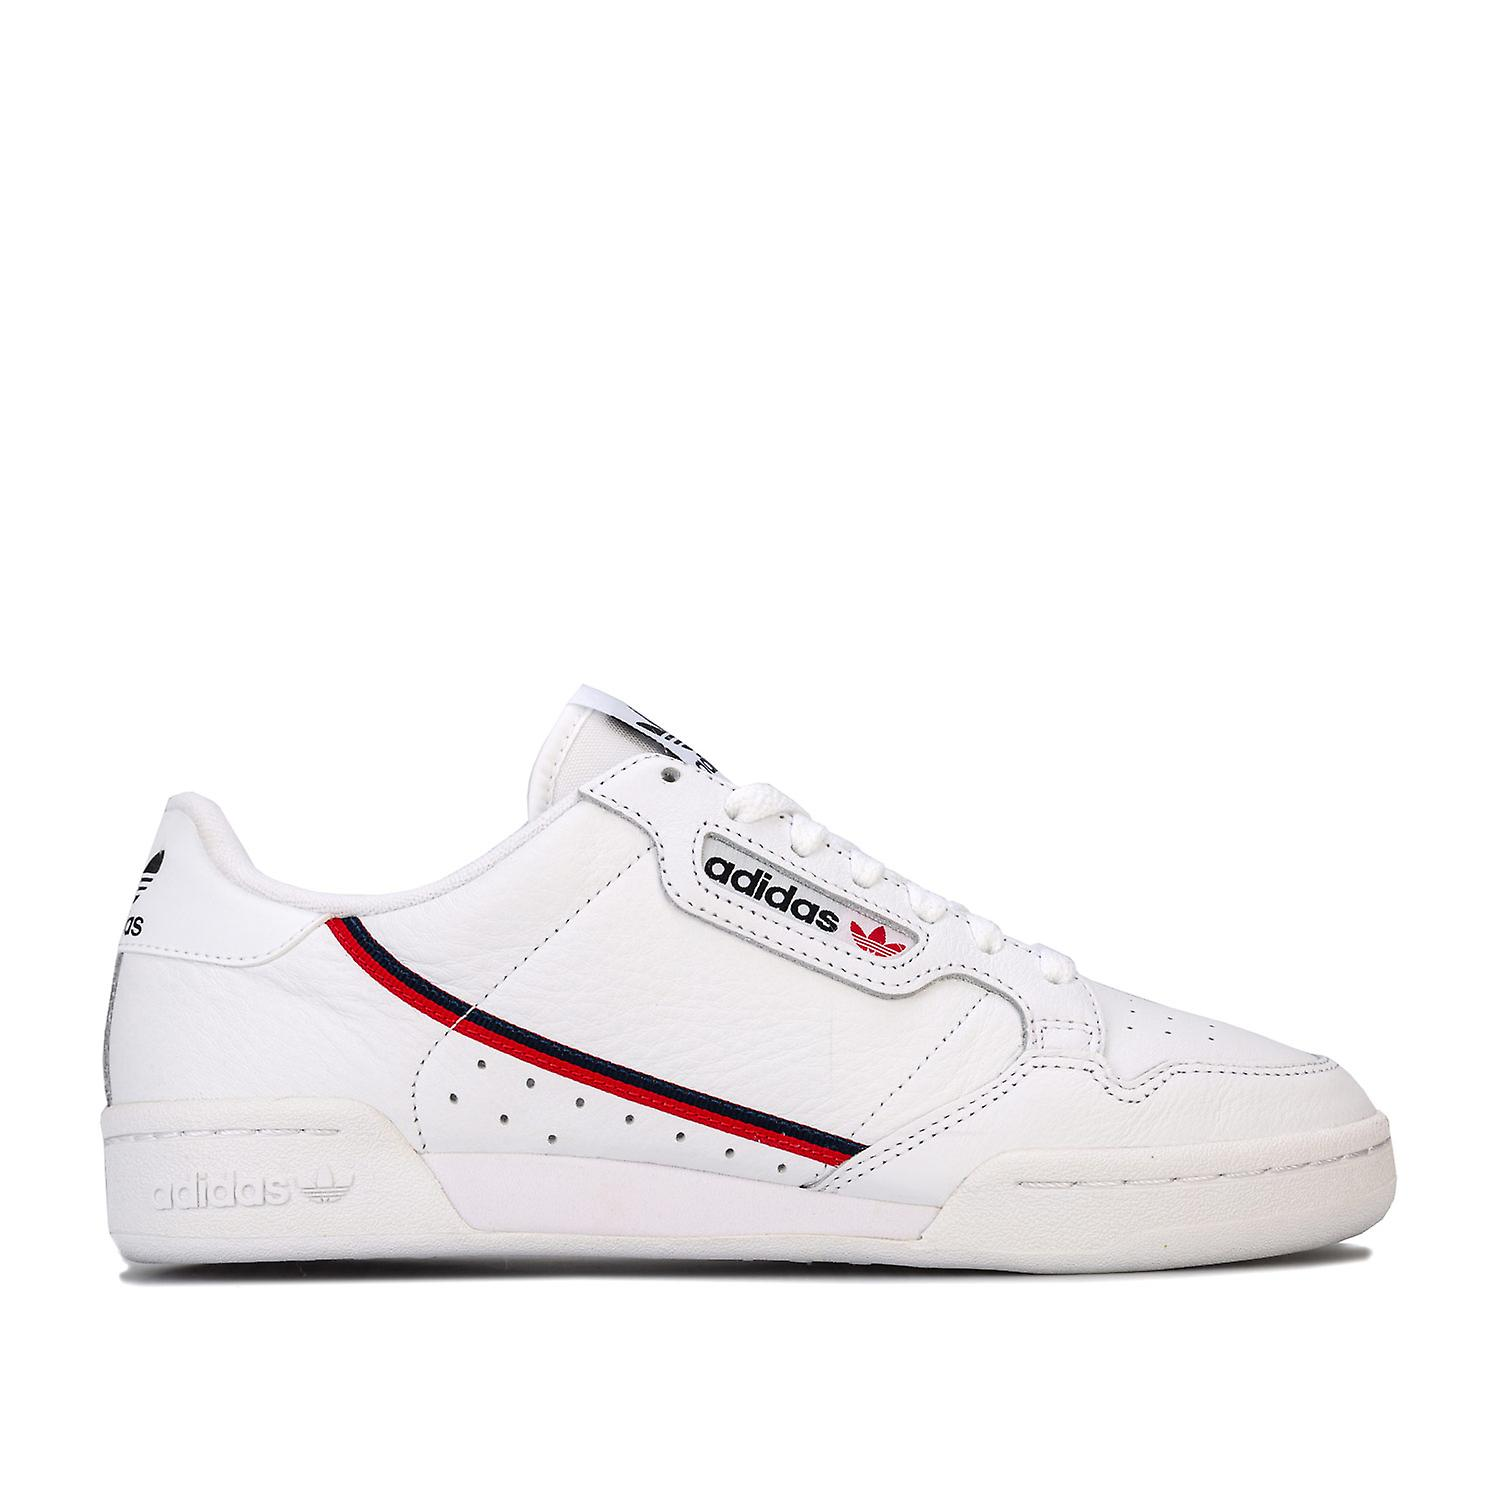 Herren adidas Originals Continental 80 Trainer In weiß blau